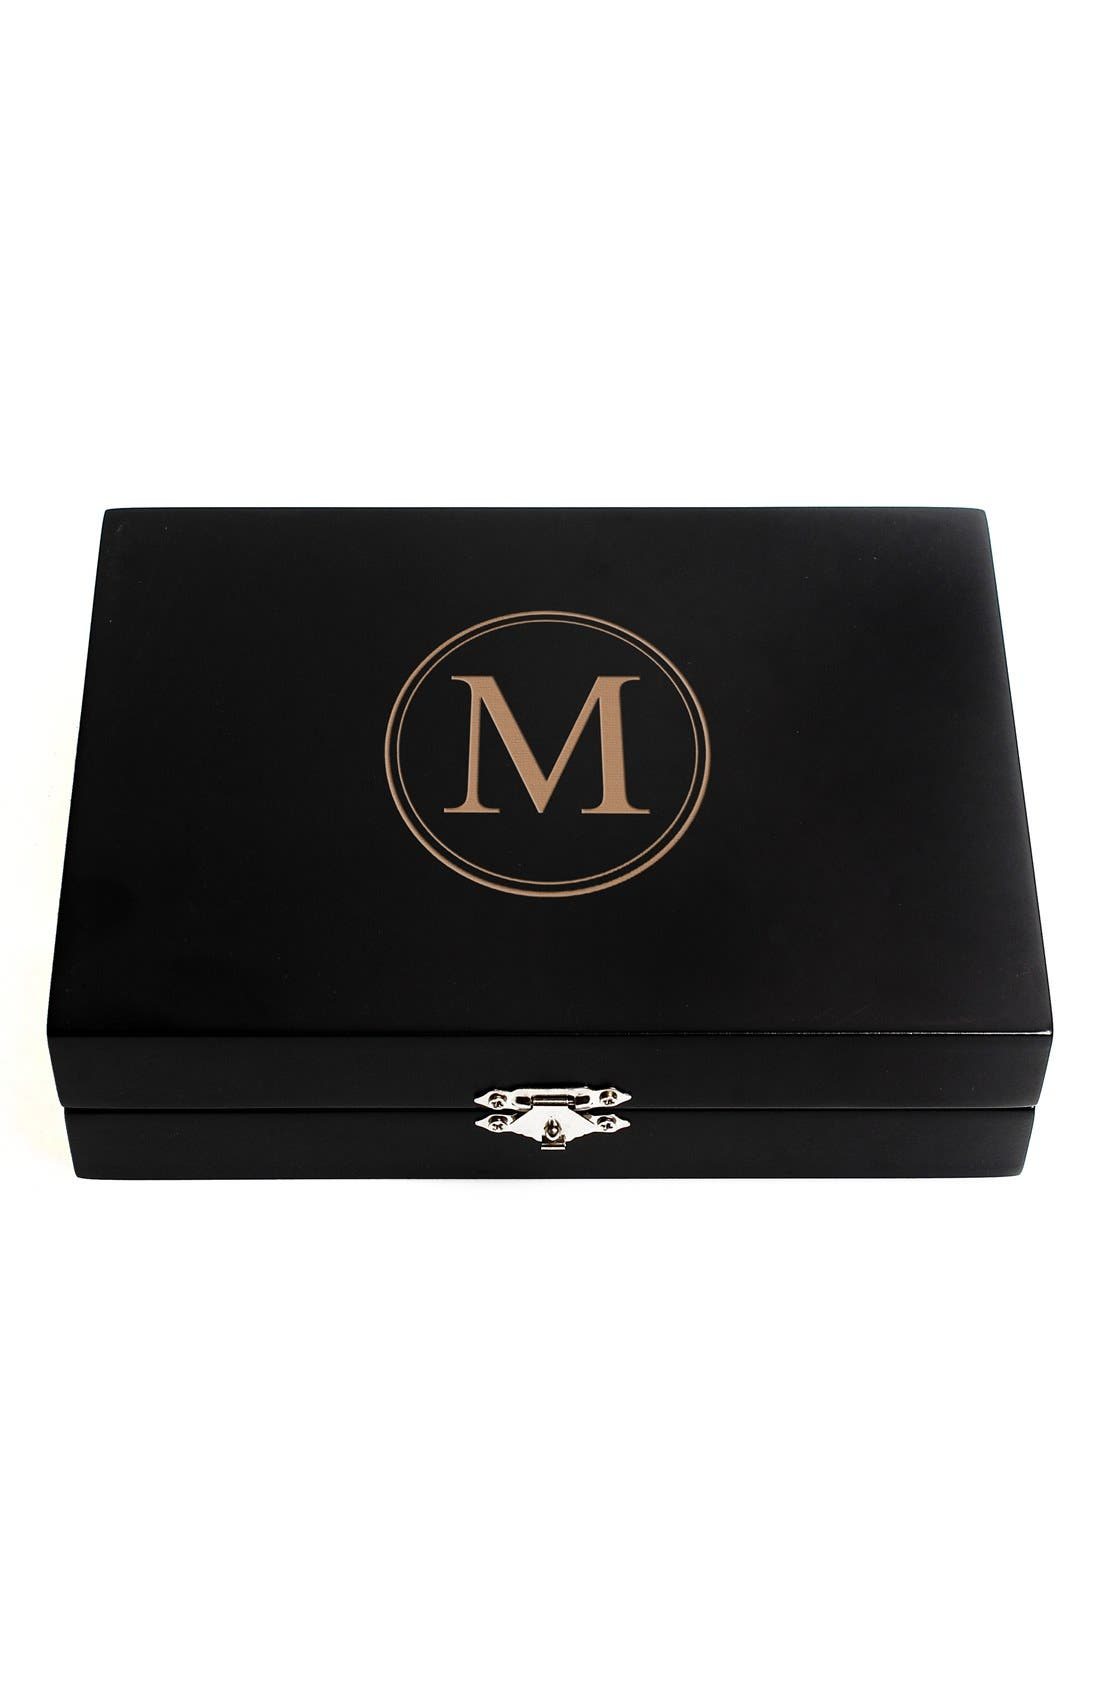 Monogram Wooden Jewelry Box,                             Main thumbnail 15, color,